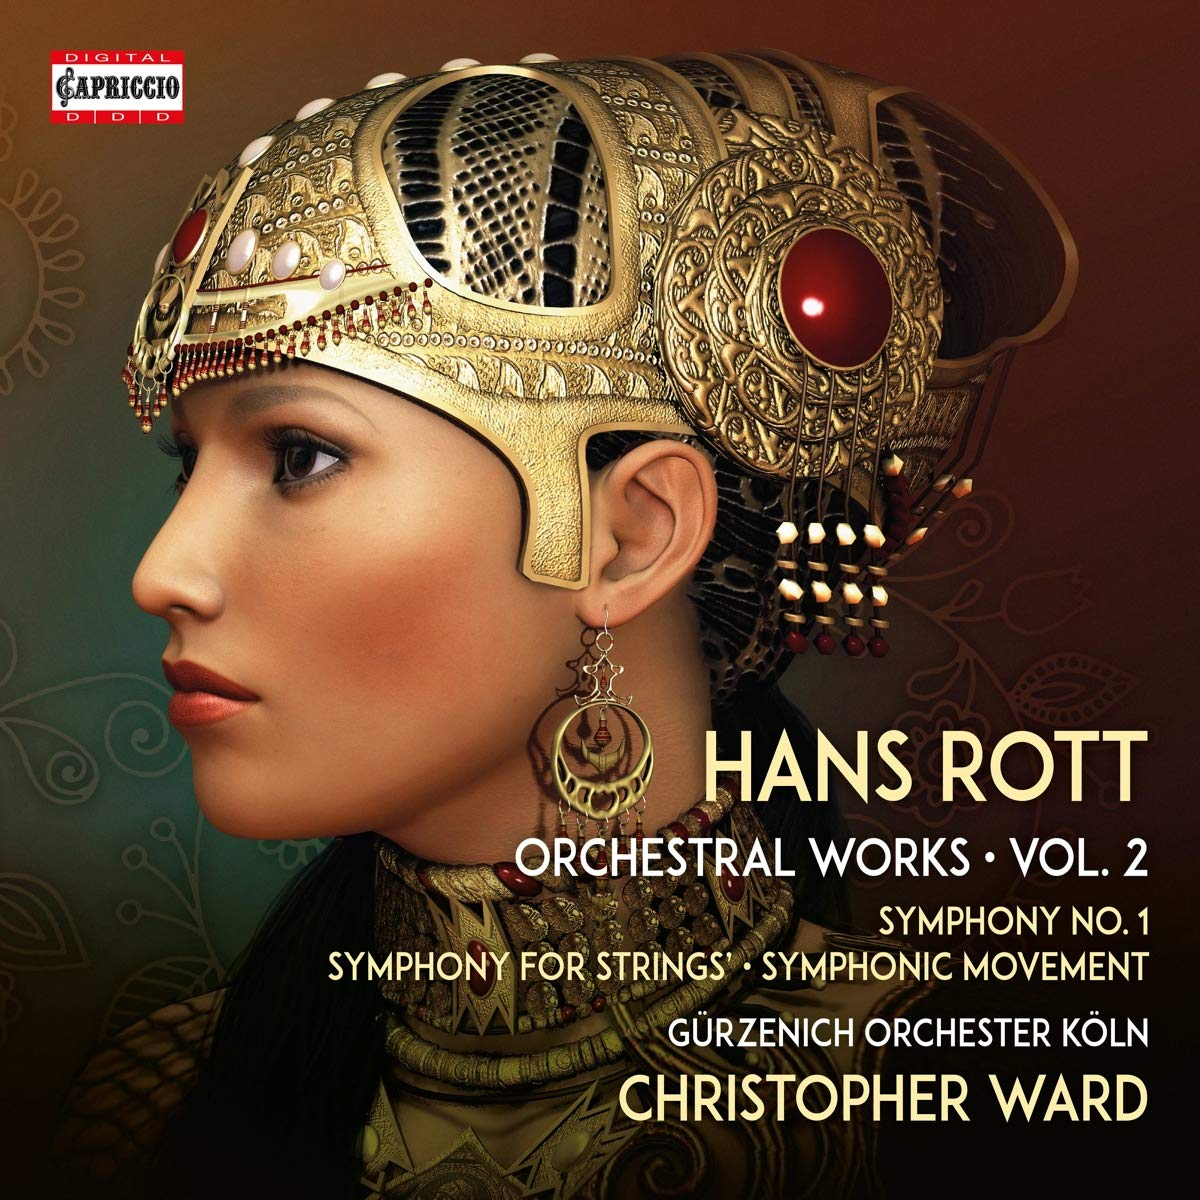 CD-Rezension: Hans Rott, Orchestral Works Vol. 2, Gürzenich Orchester Köln, Christopher Ward